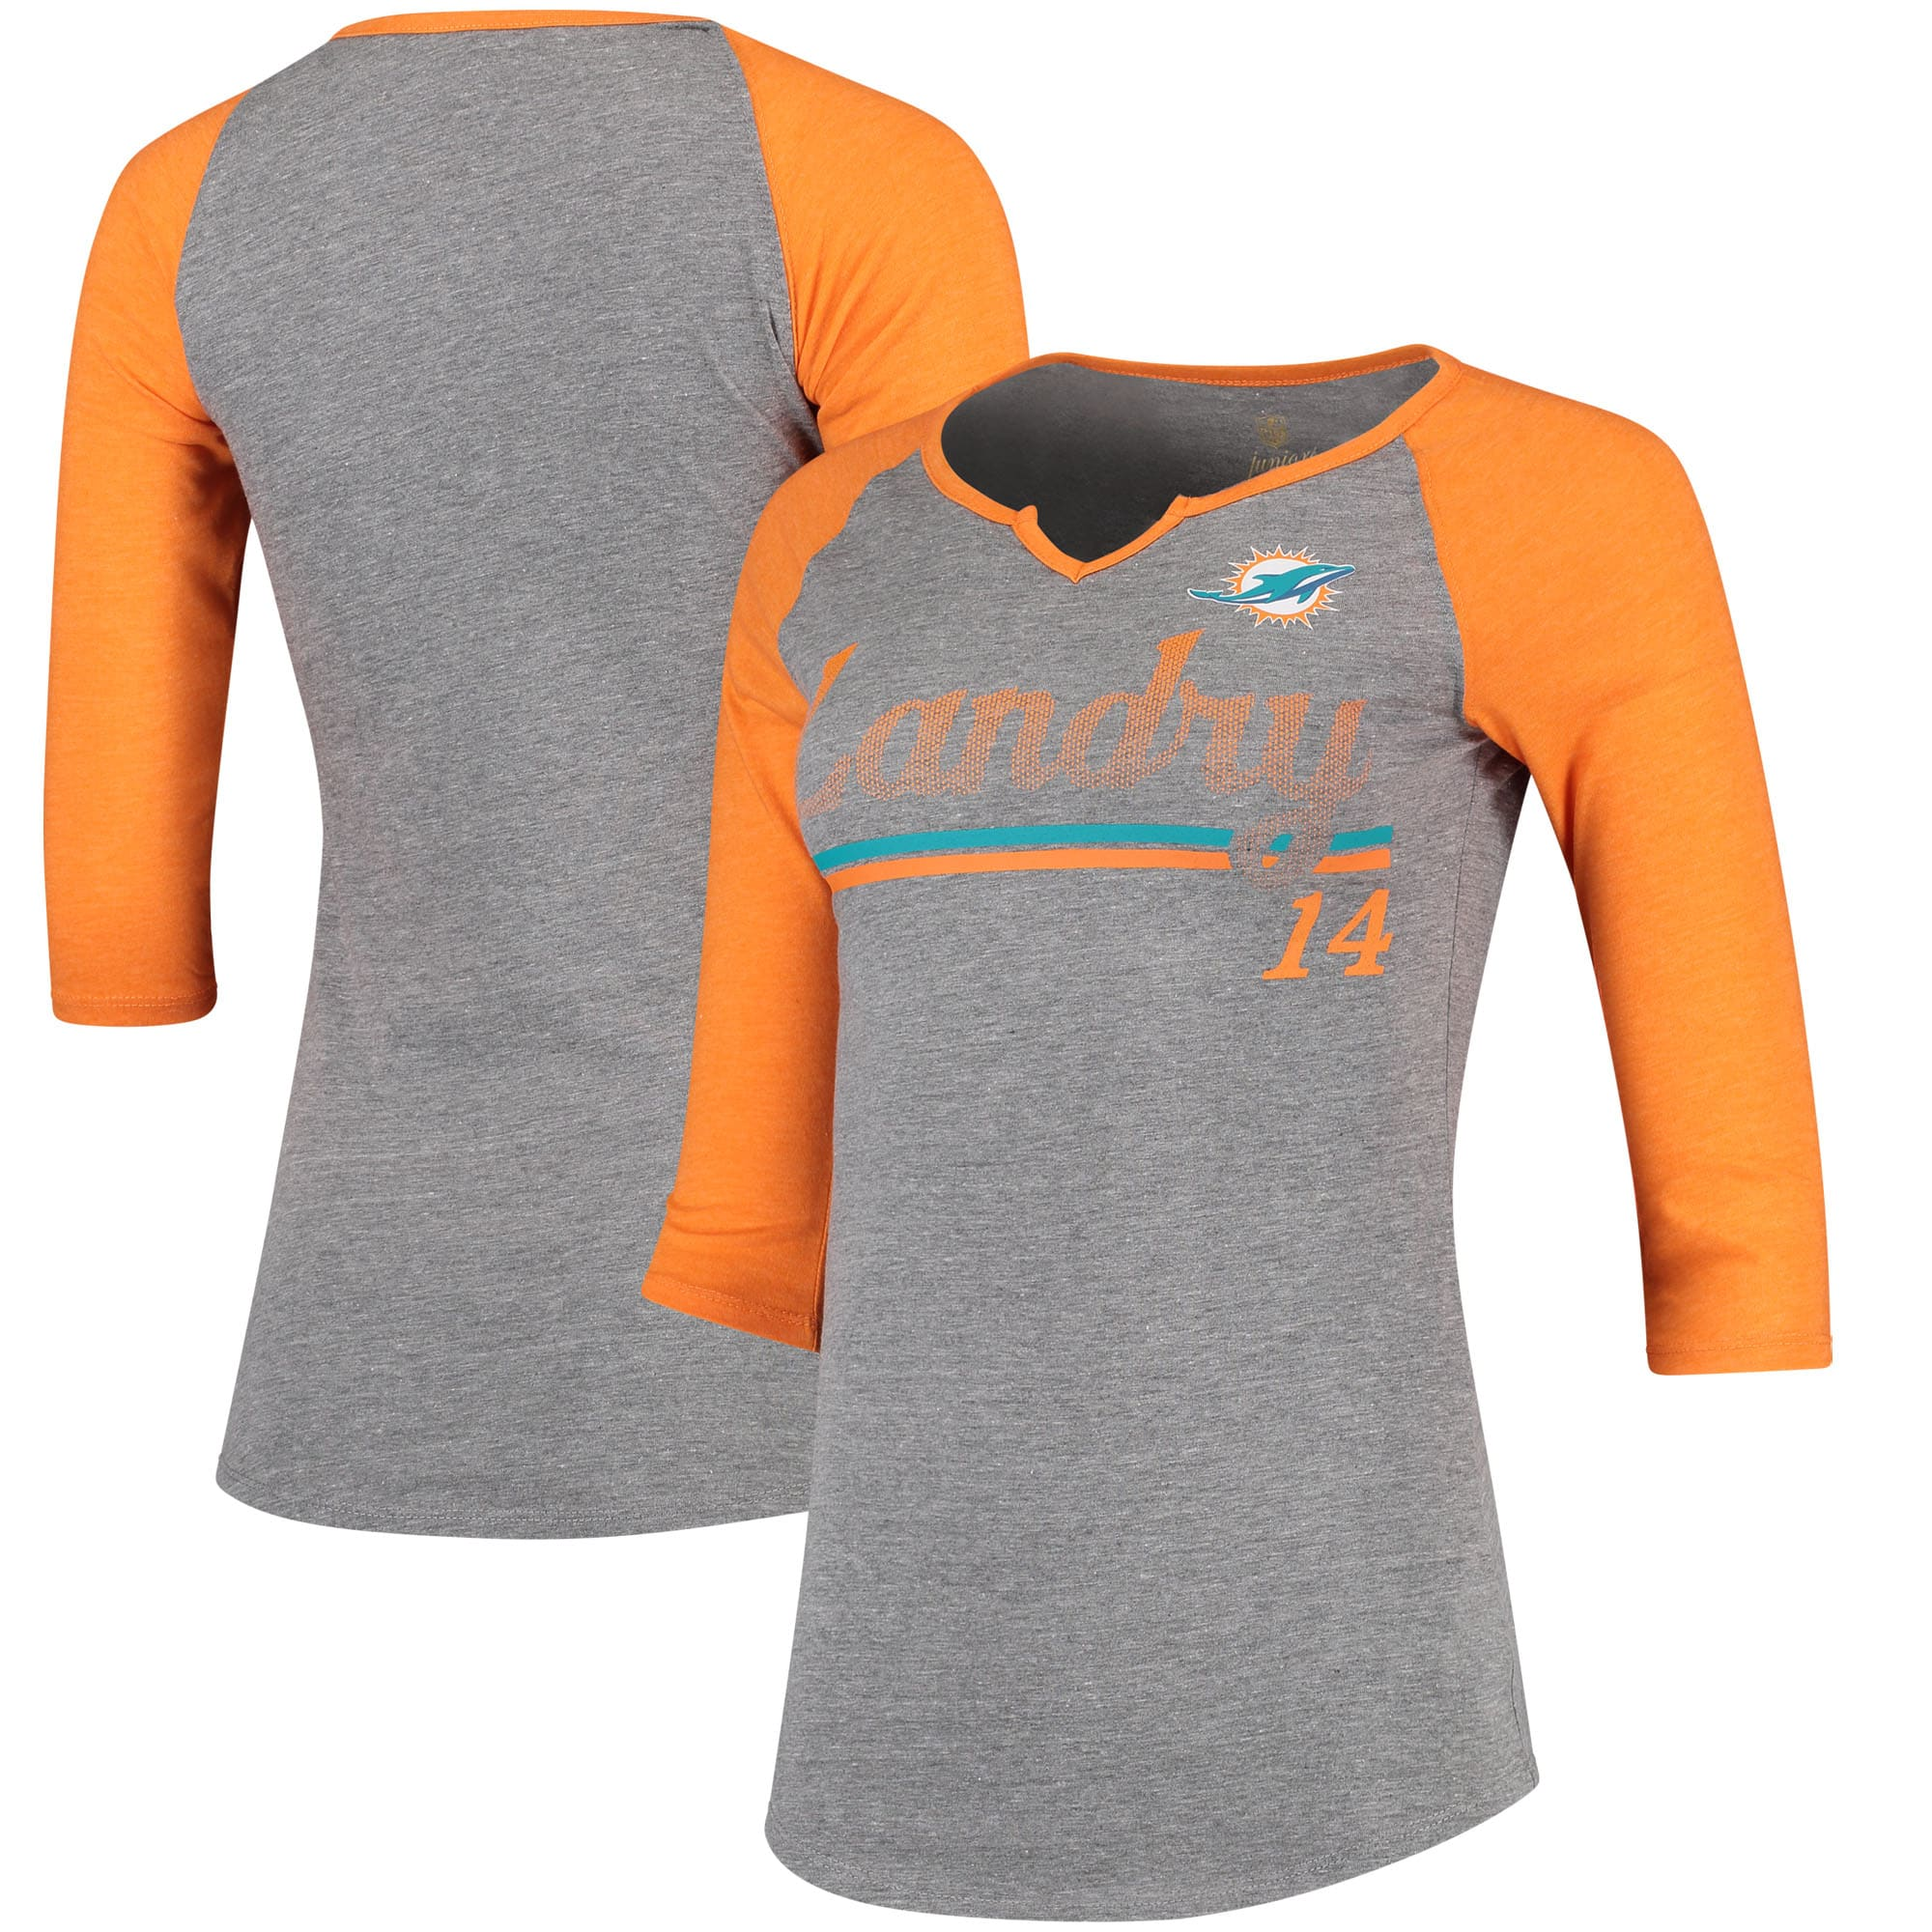 Jarvis Landry Miami Dolphins Women's Juniors Over the Line Player Name & Number Tri-Blend 3/4-Sleeve V-Notch T-Shirt - Heathered Gray/Orange